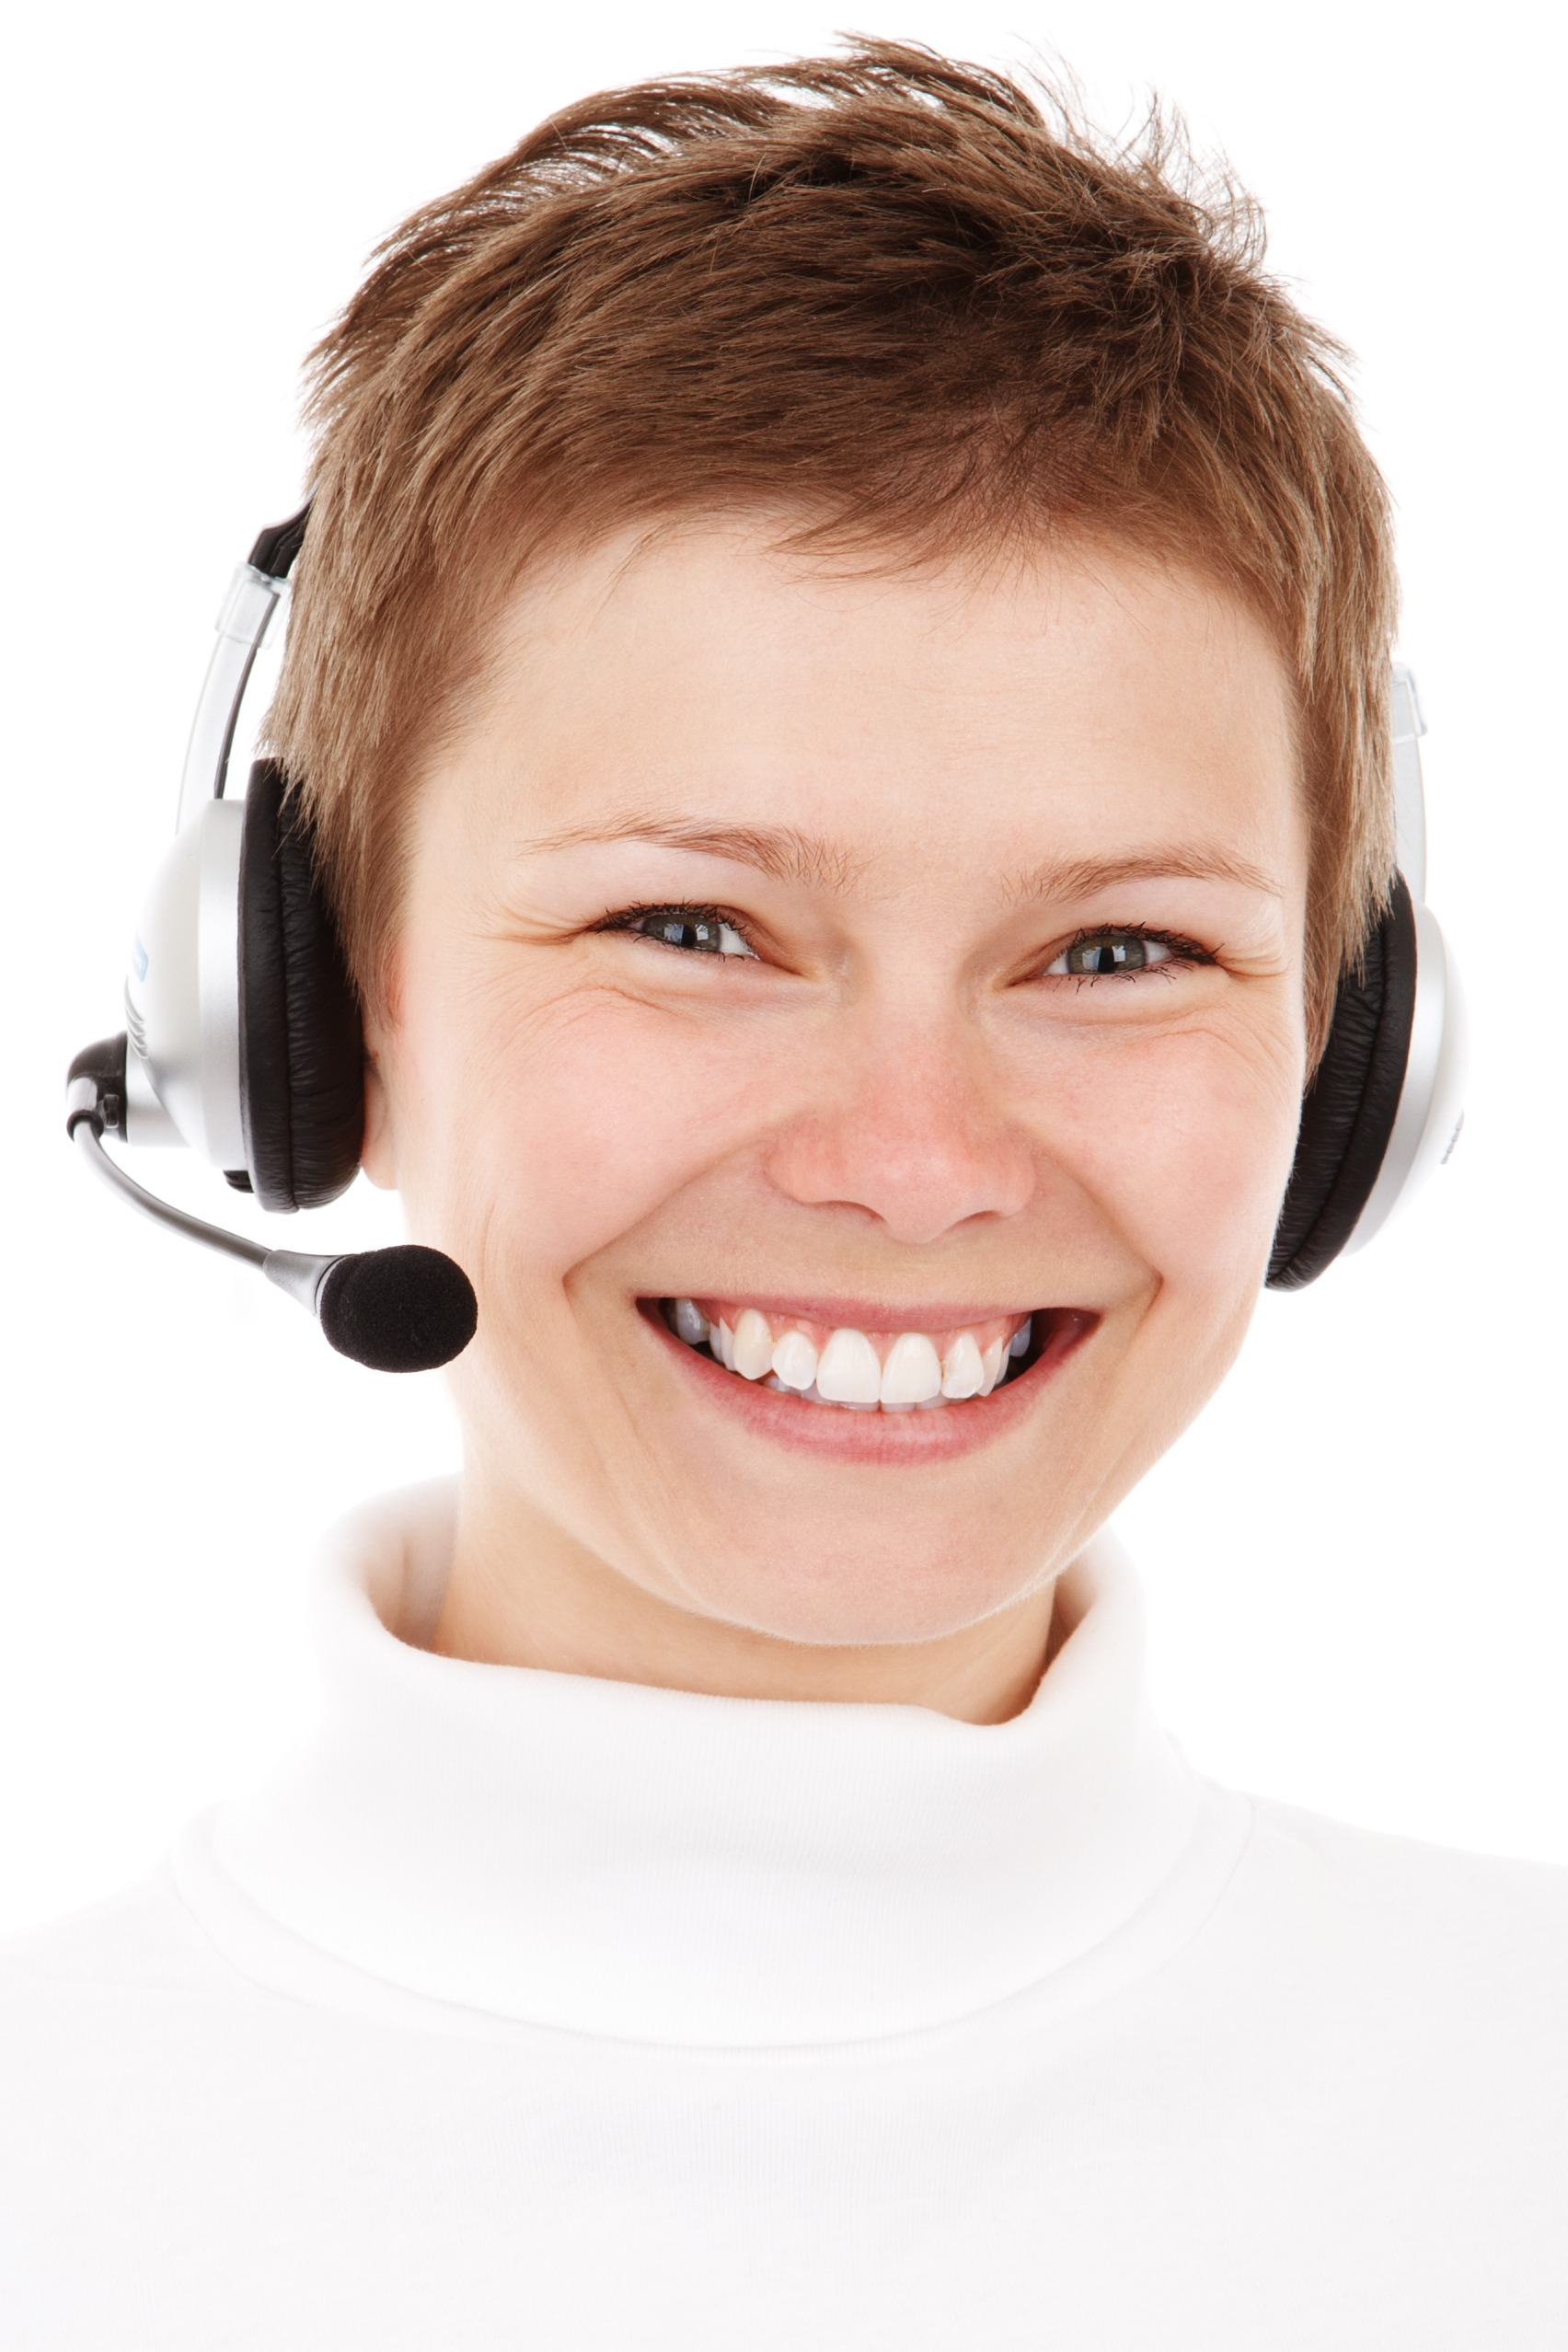 Woman smiling with headset in front of white background